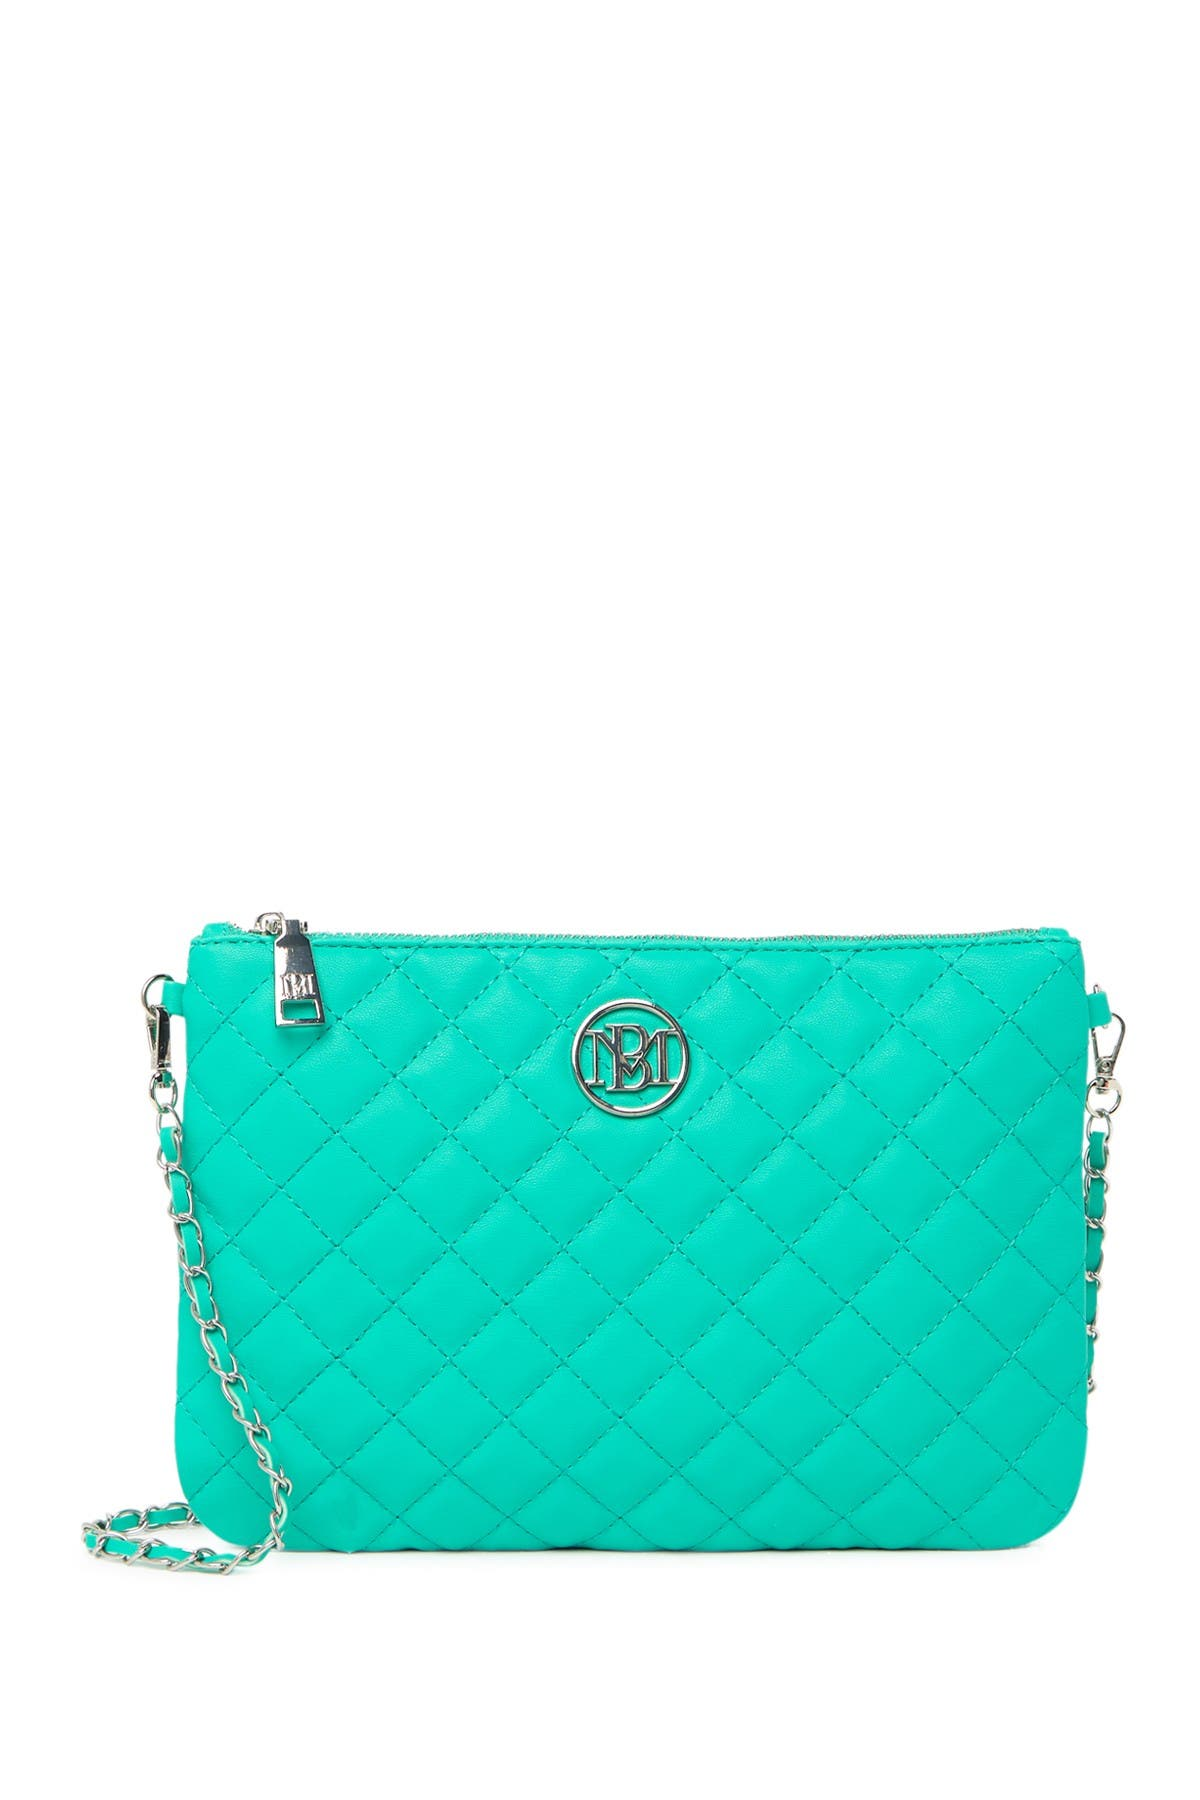 Image of Badgley Mischka Quilted Crossbody Bag